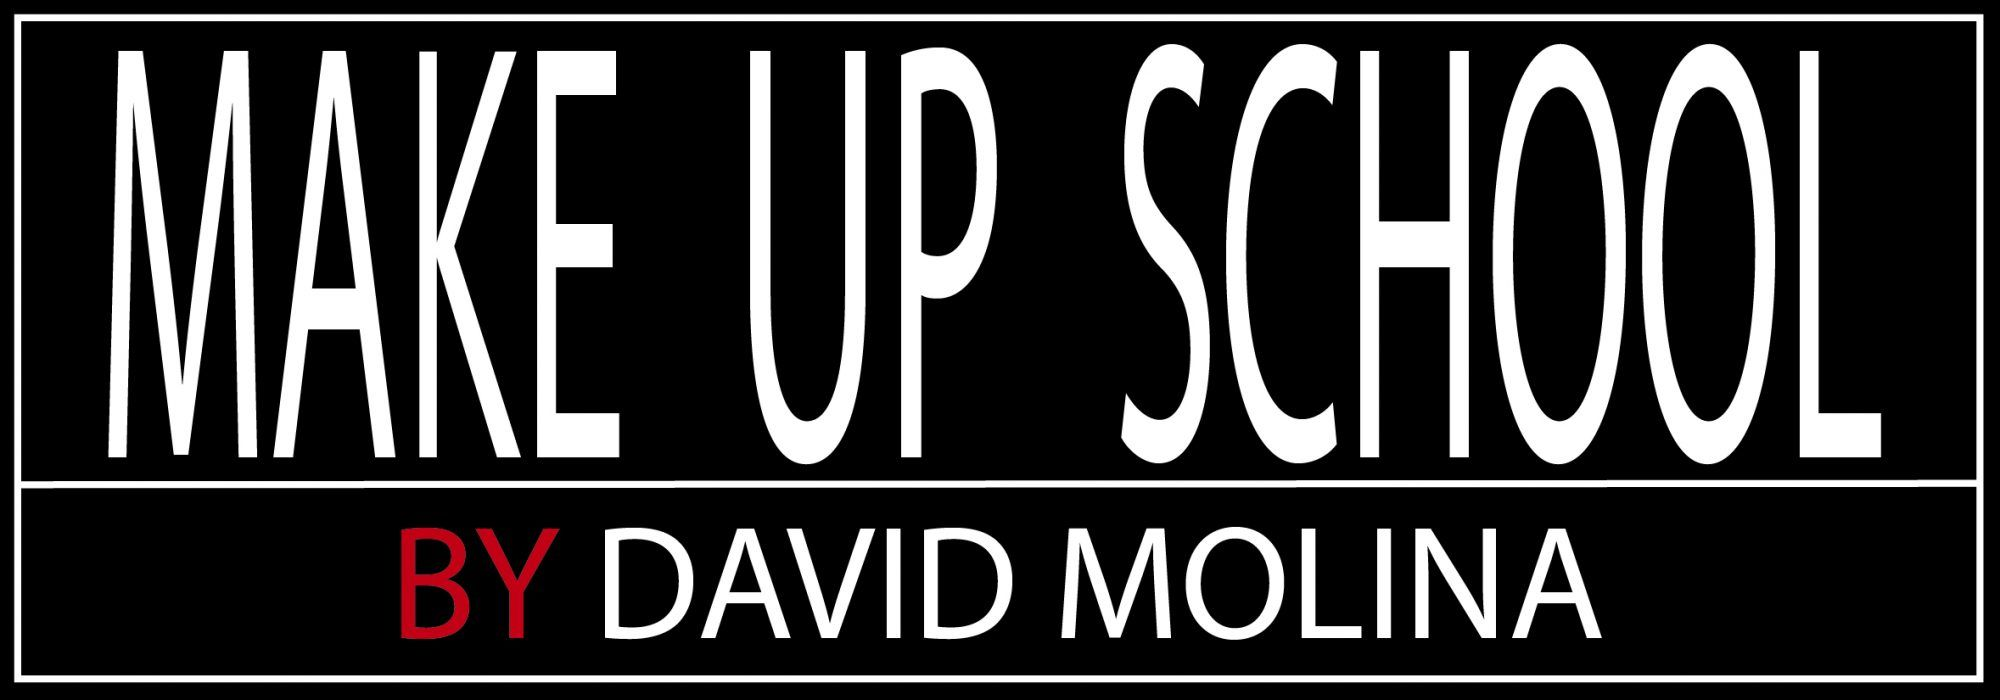 Make Up School by David Molina